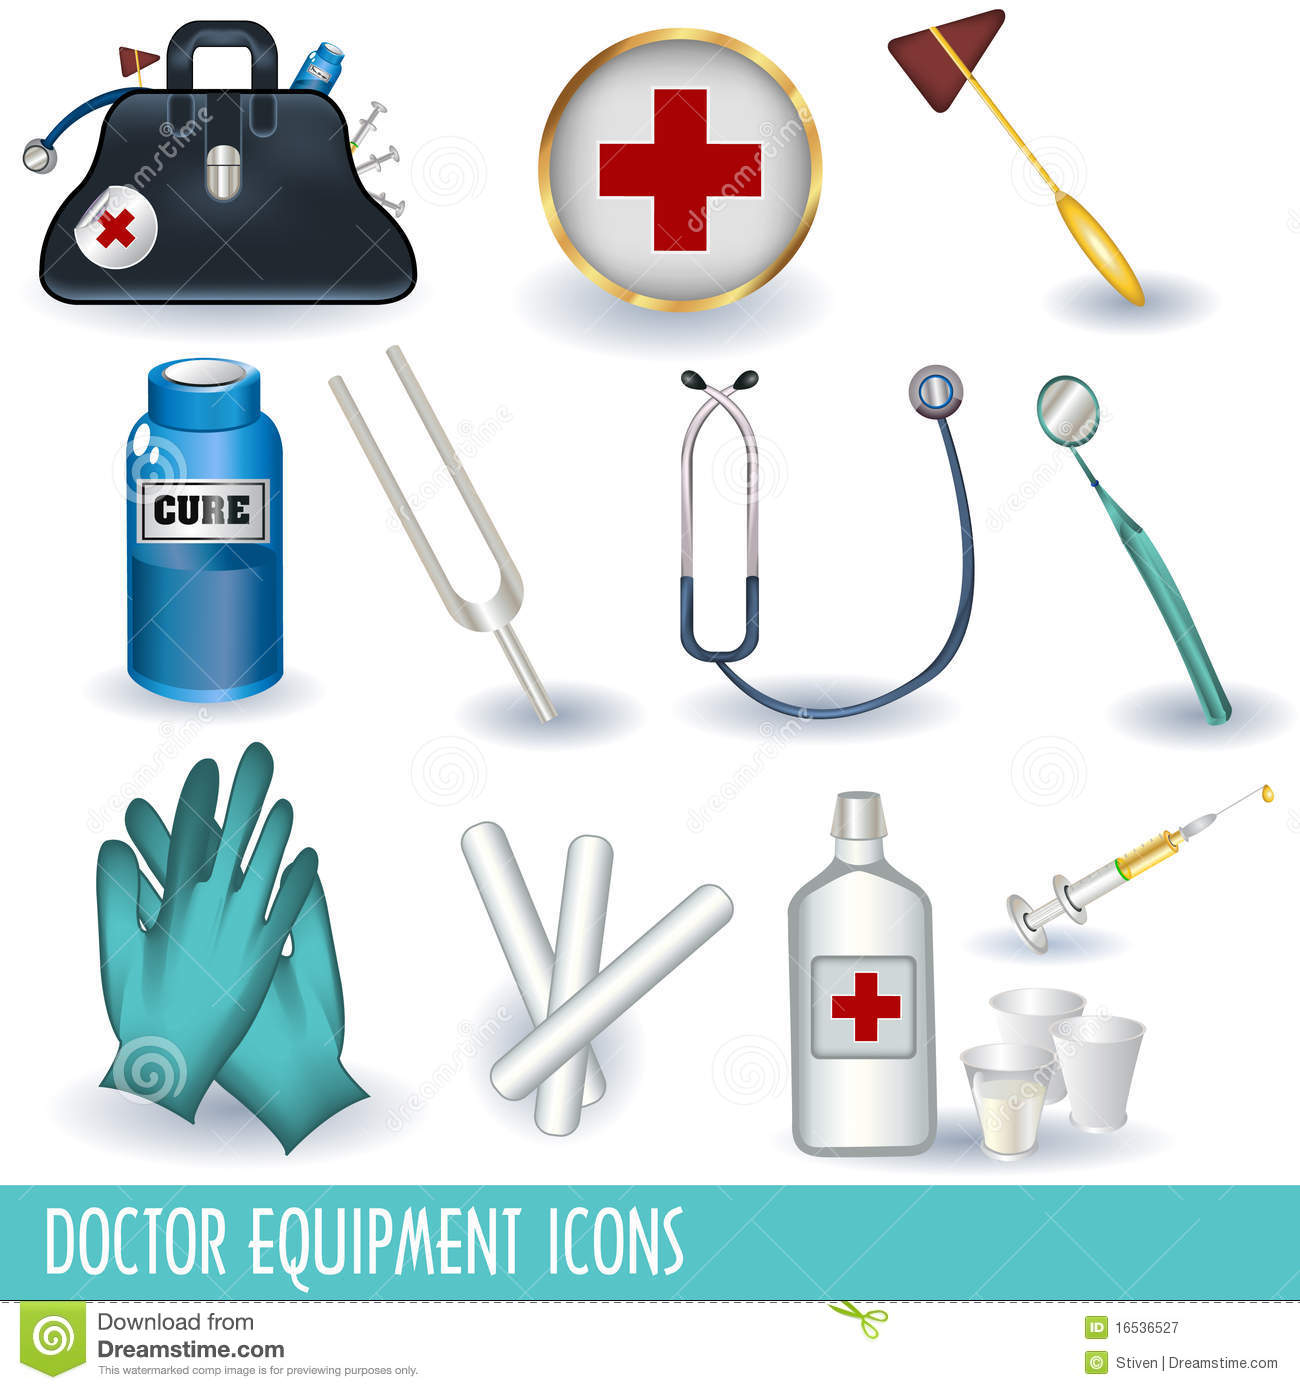 Nurse Tools And Equipment Clipart Doctor Equipment Icons